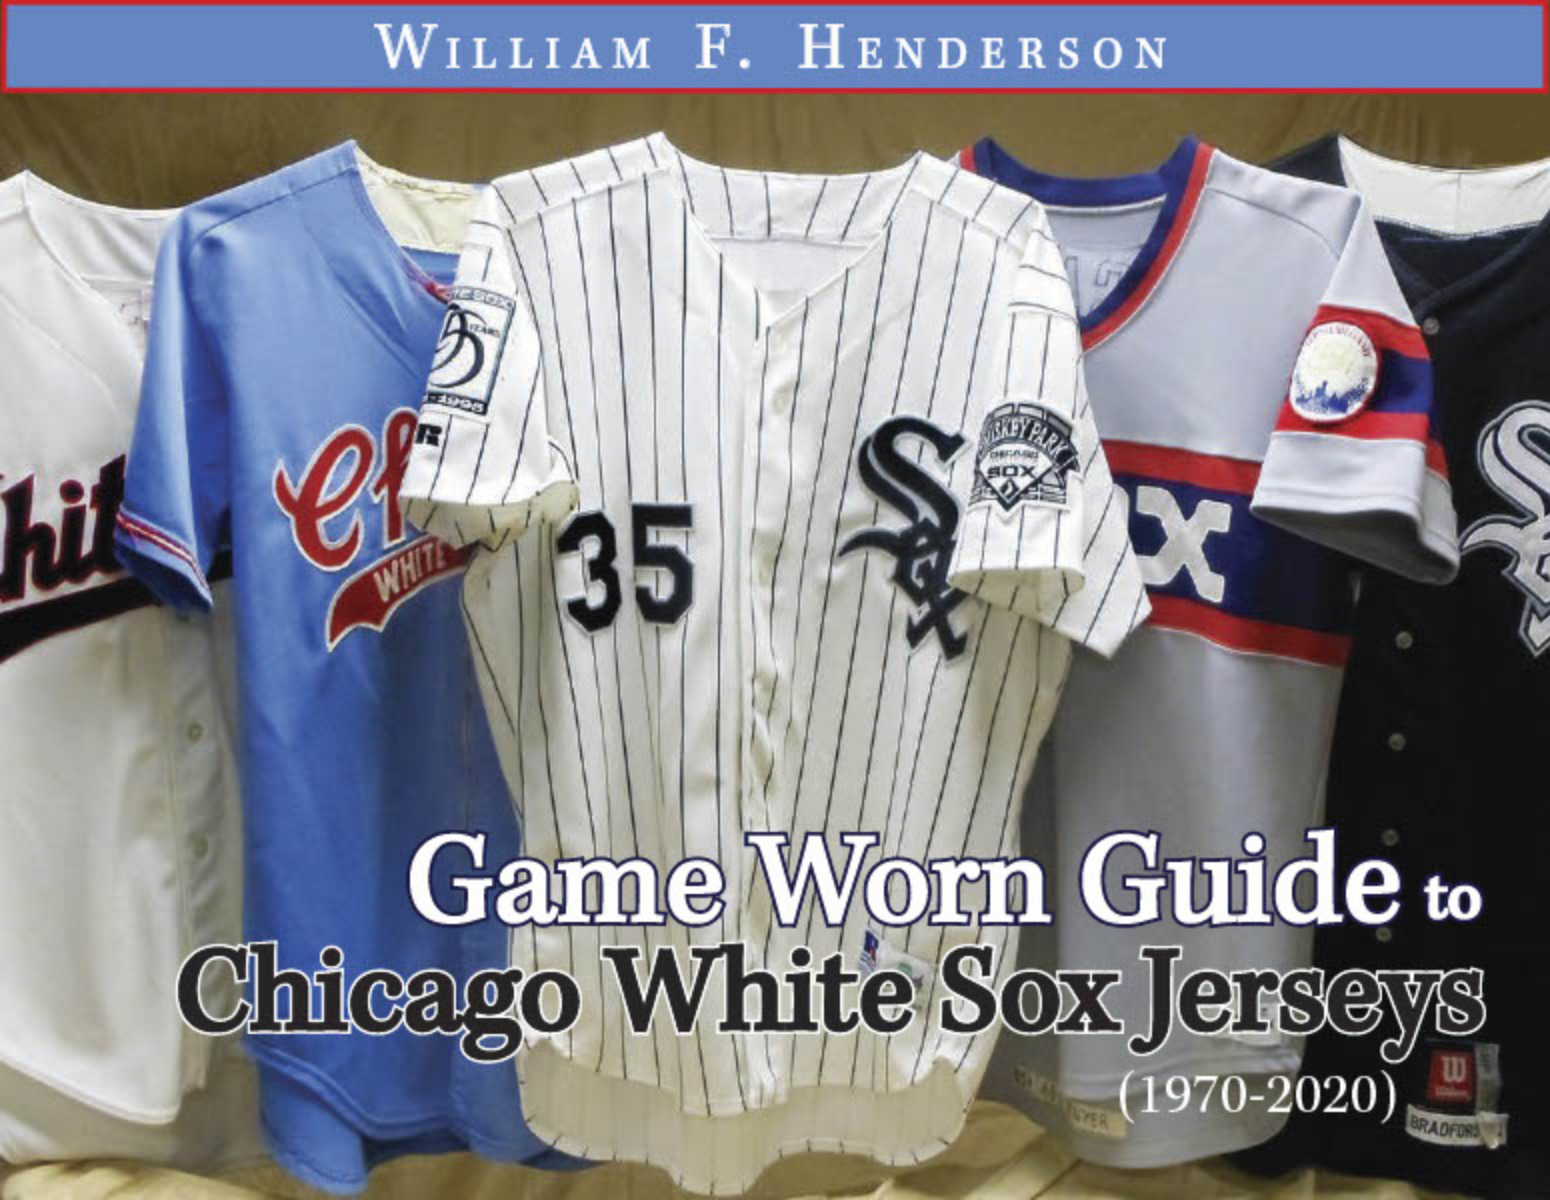 Game Worn Guide to Chicago White Sox Jerseys (1970-2020)